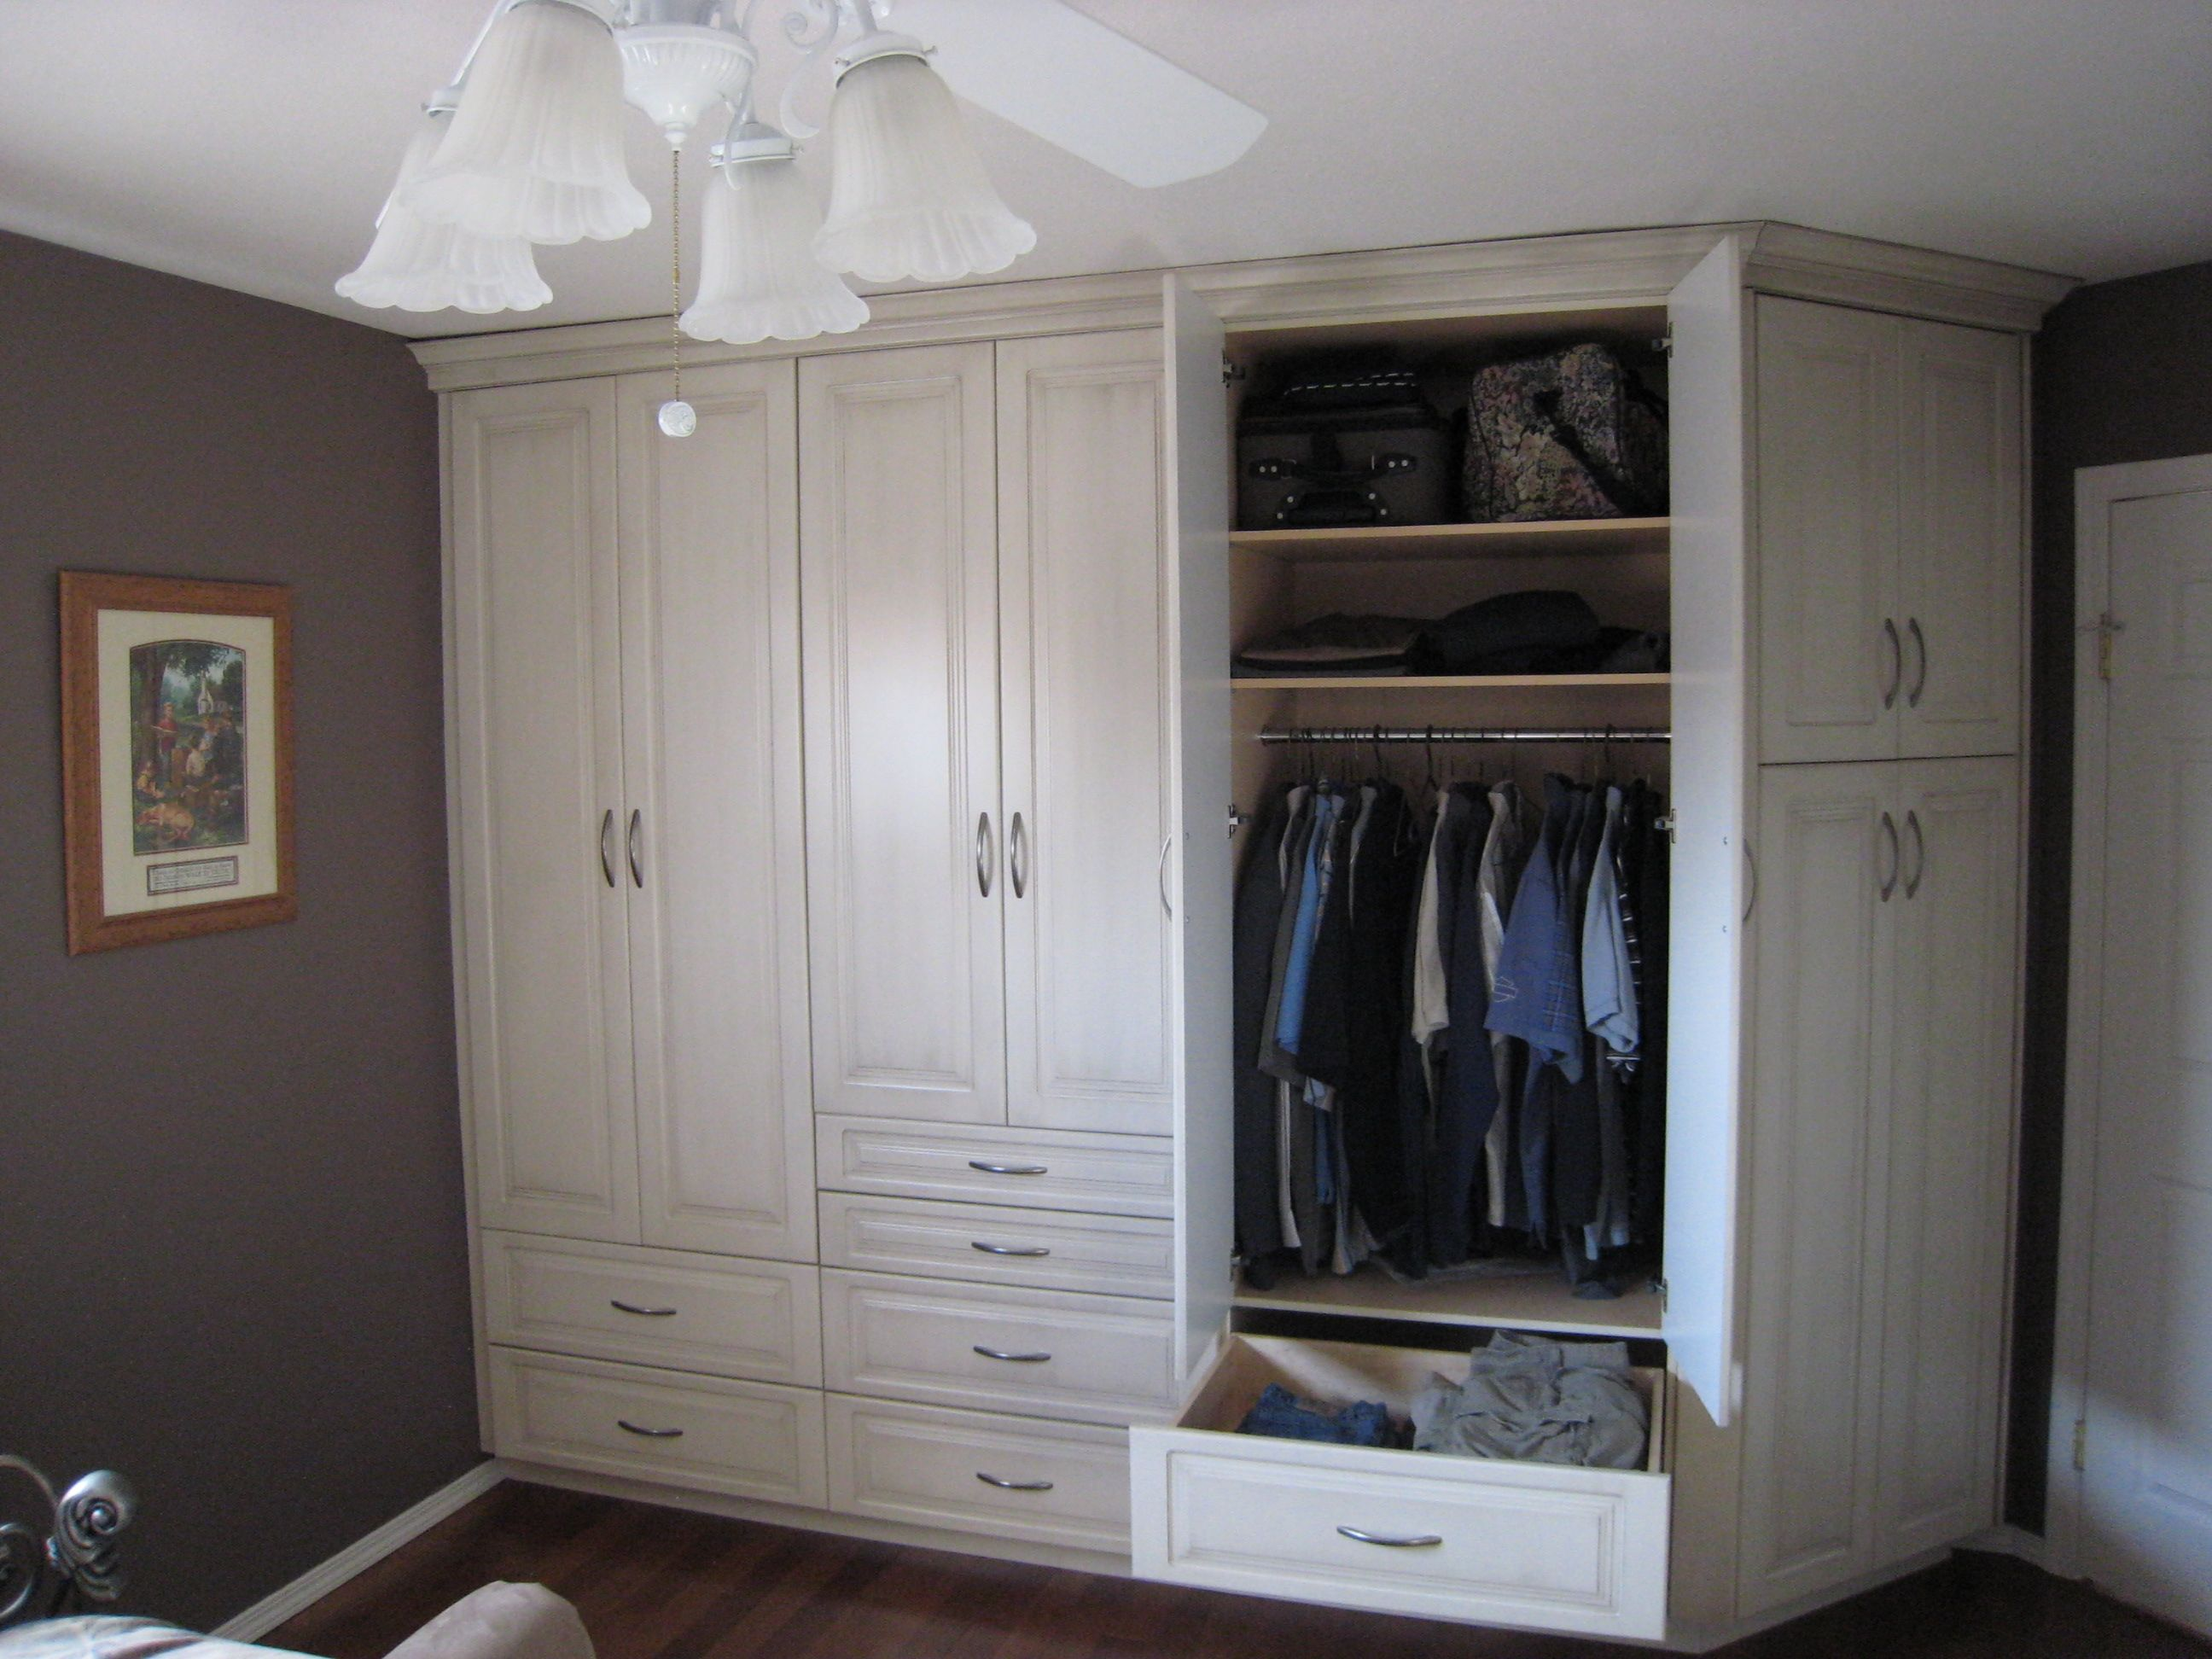 Bedroom built in closet, exactly what I need in my bedroom ...